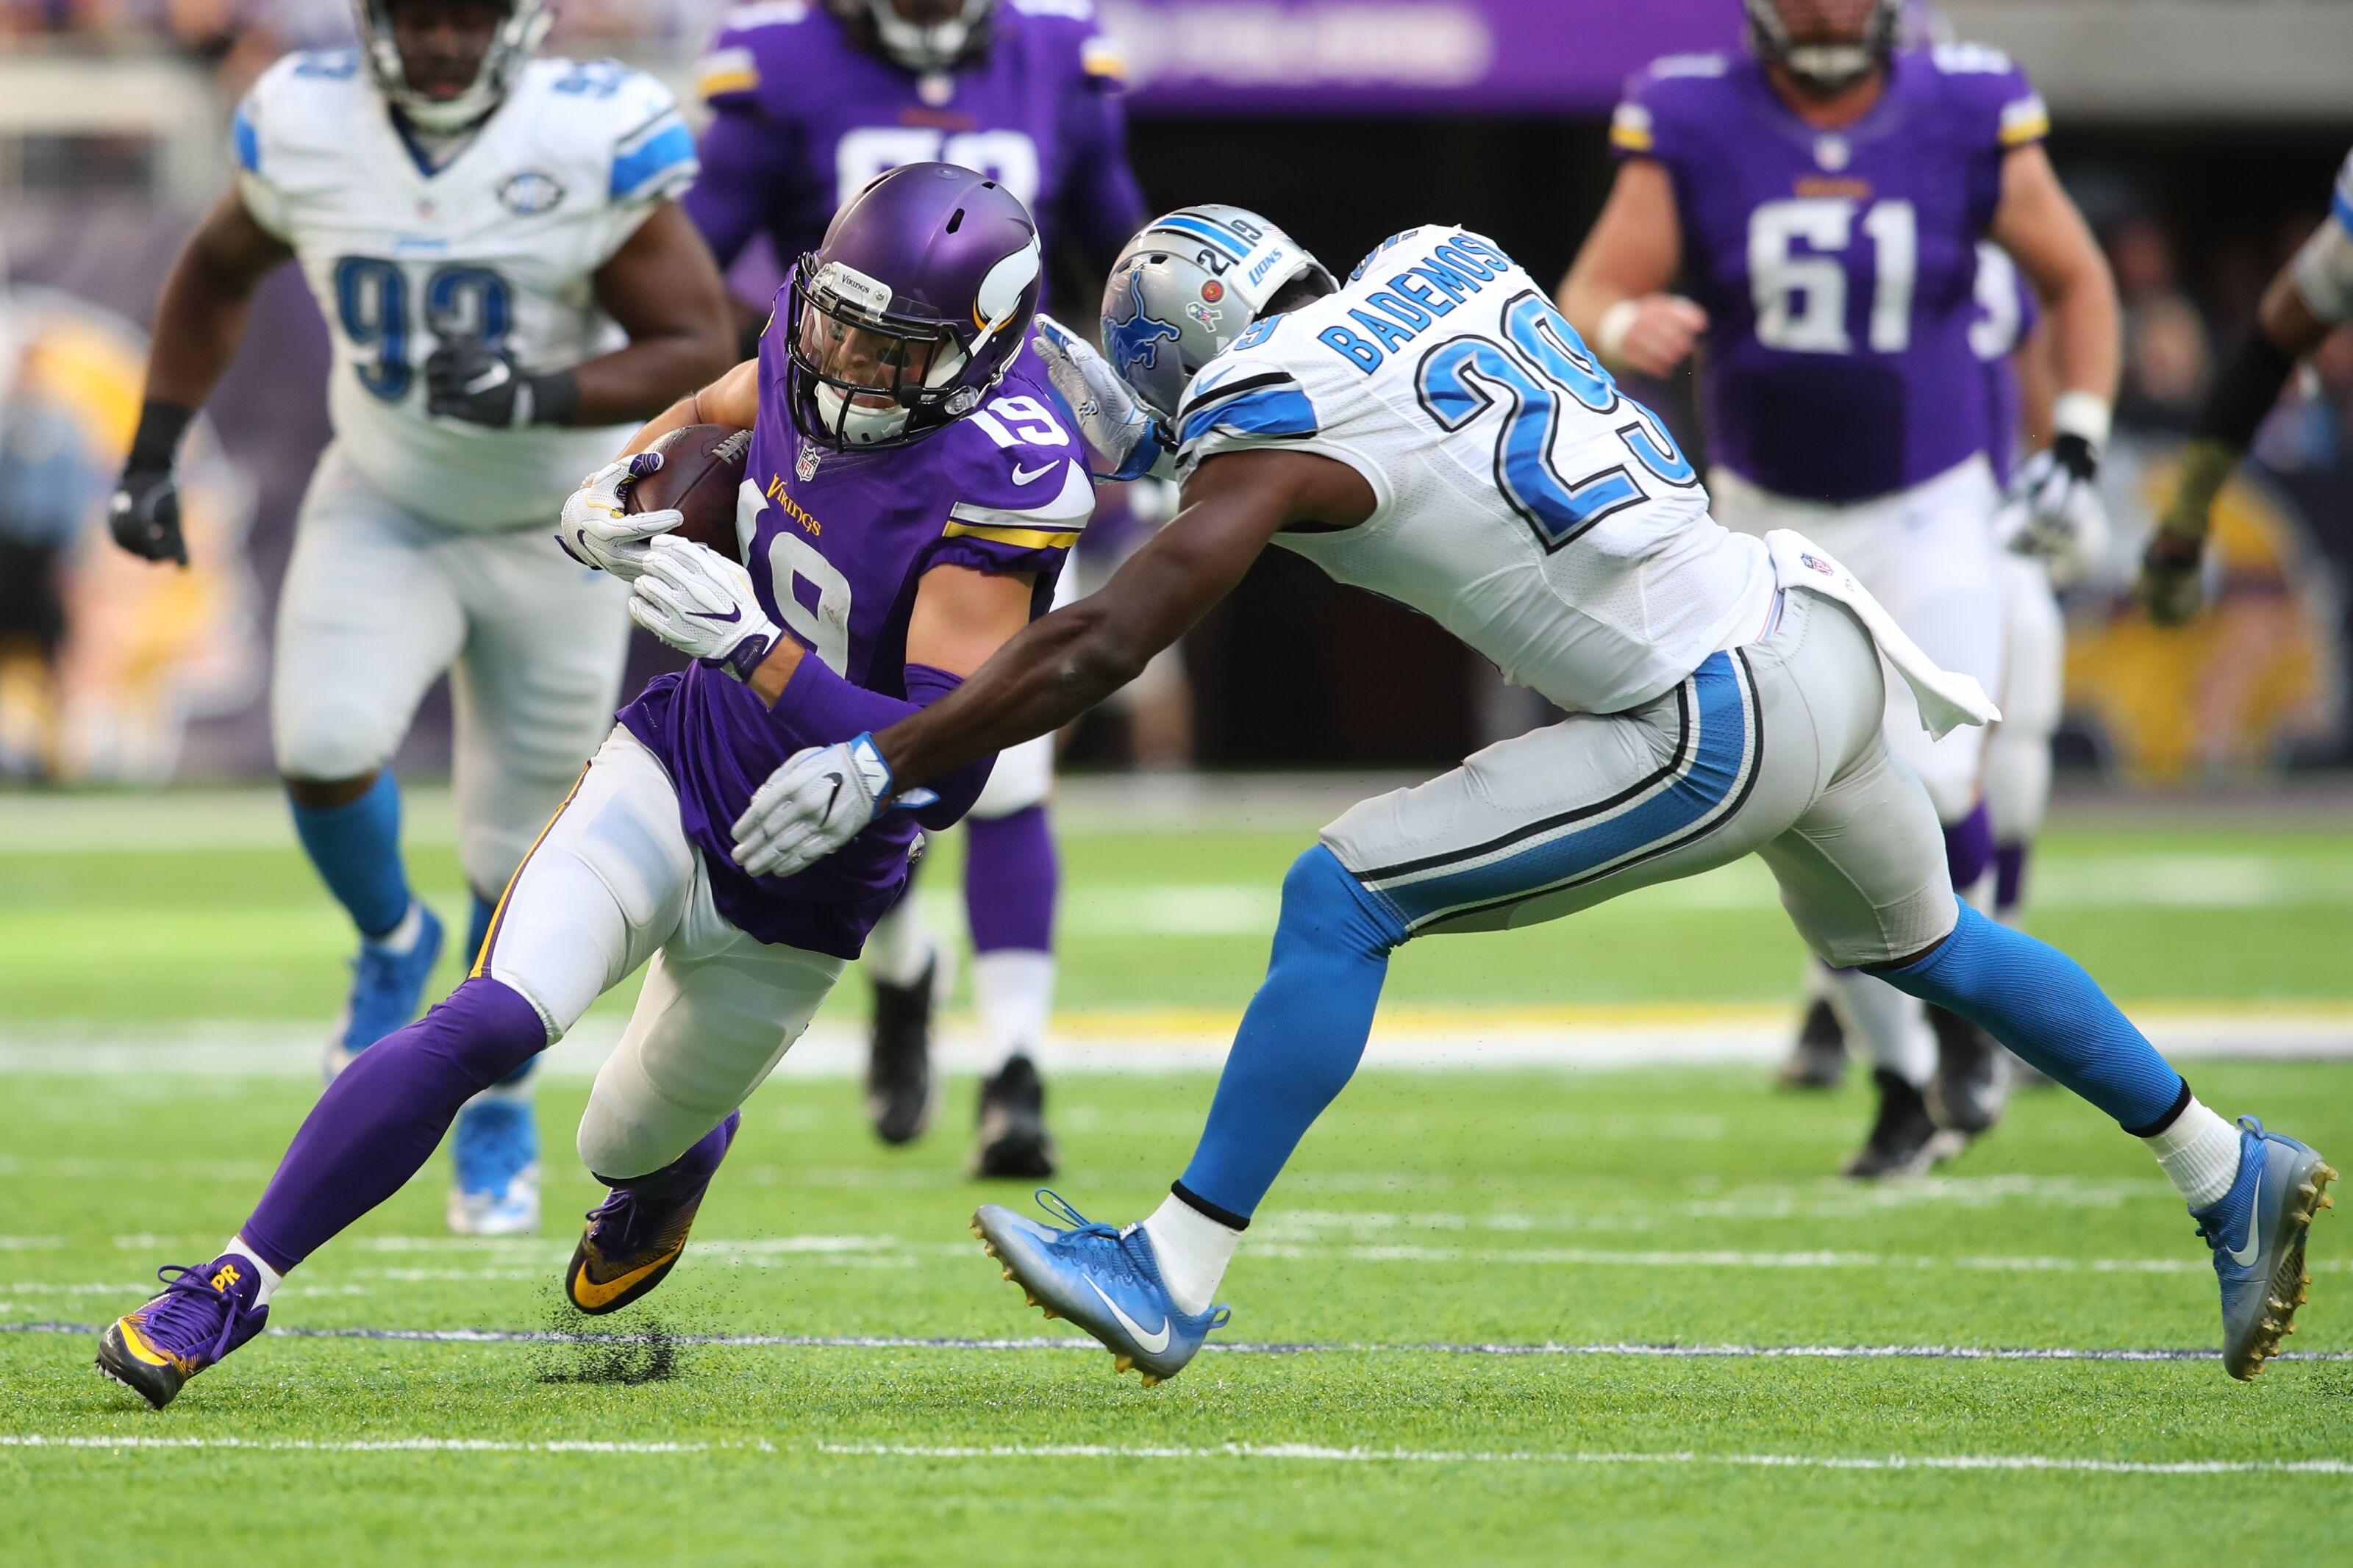 Detroit Lions Video View all the most recent video content from the Detroit Lions